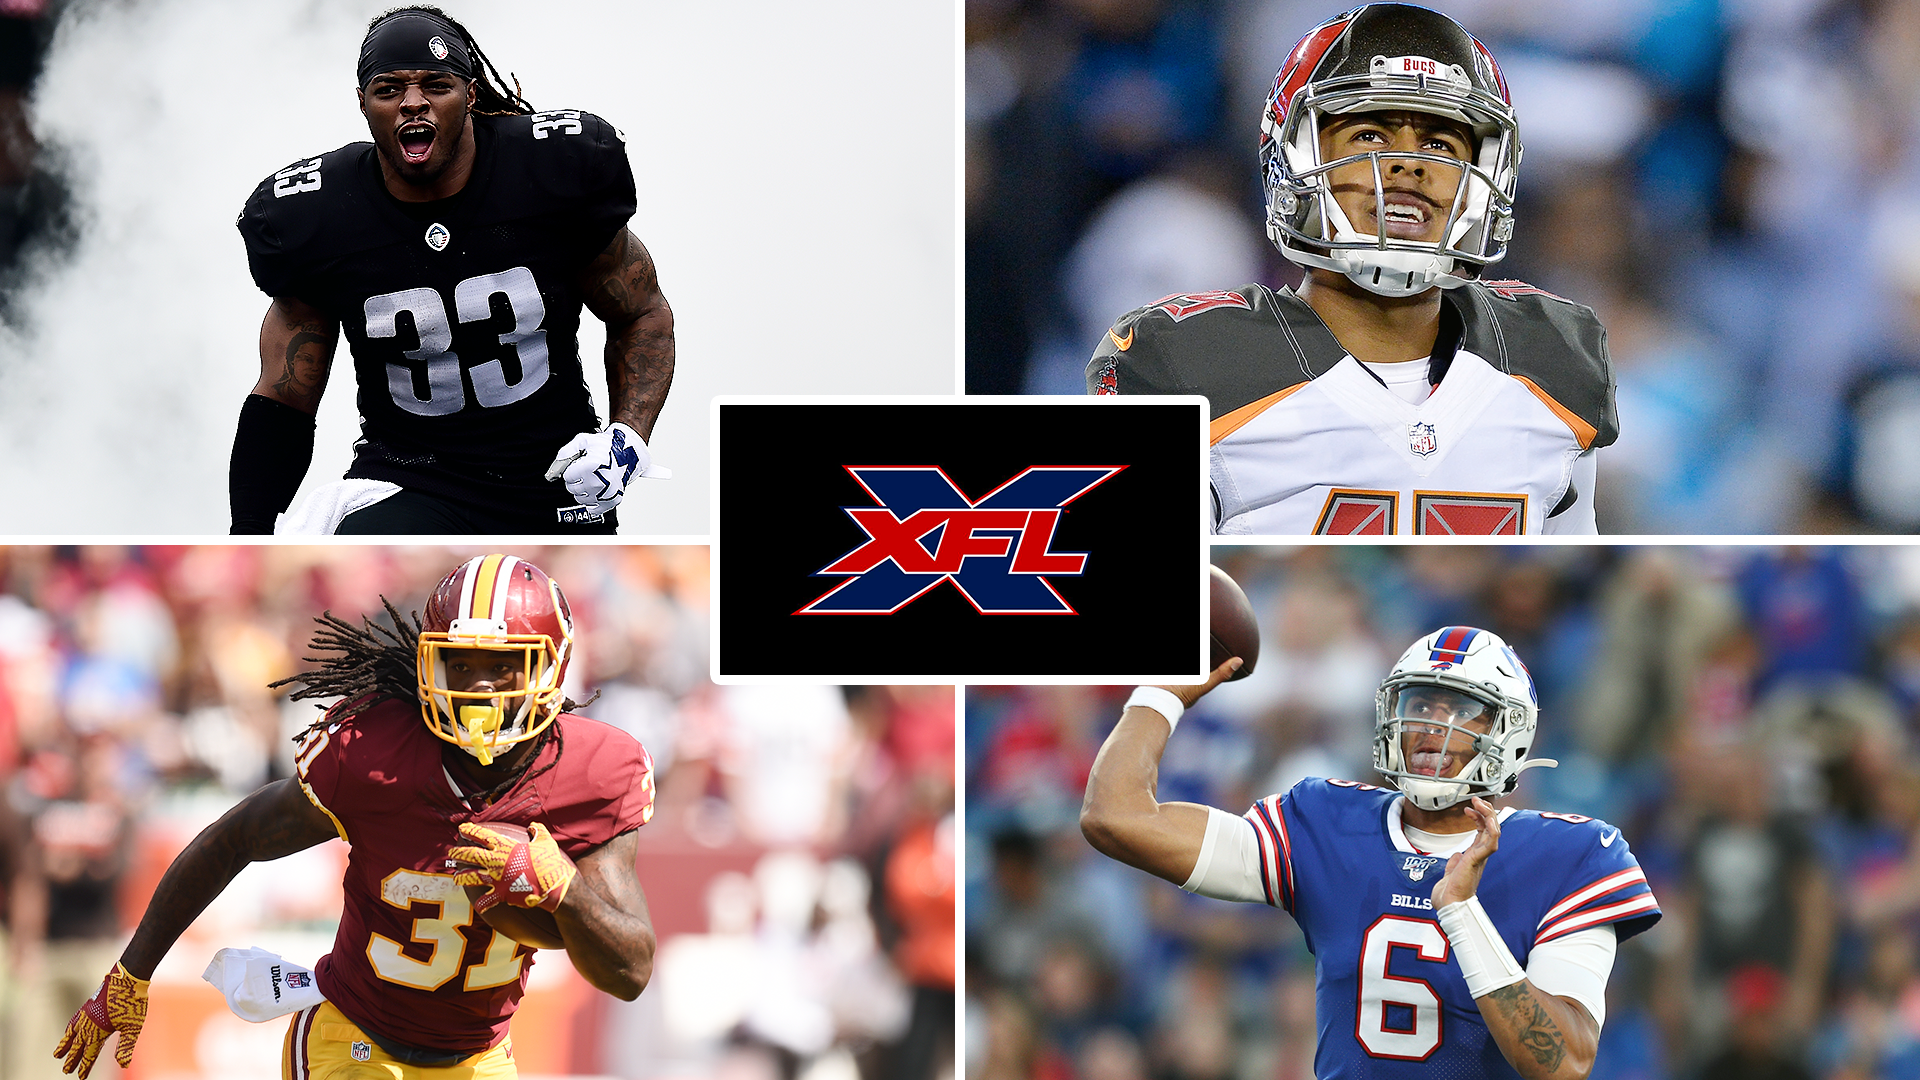 XFL Draft picks 2019 Complete results, rosters, players for